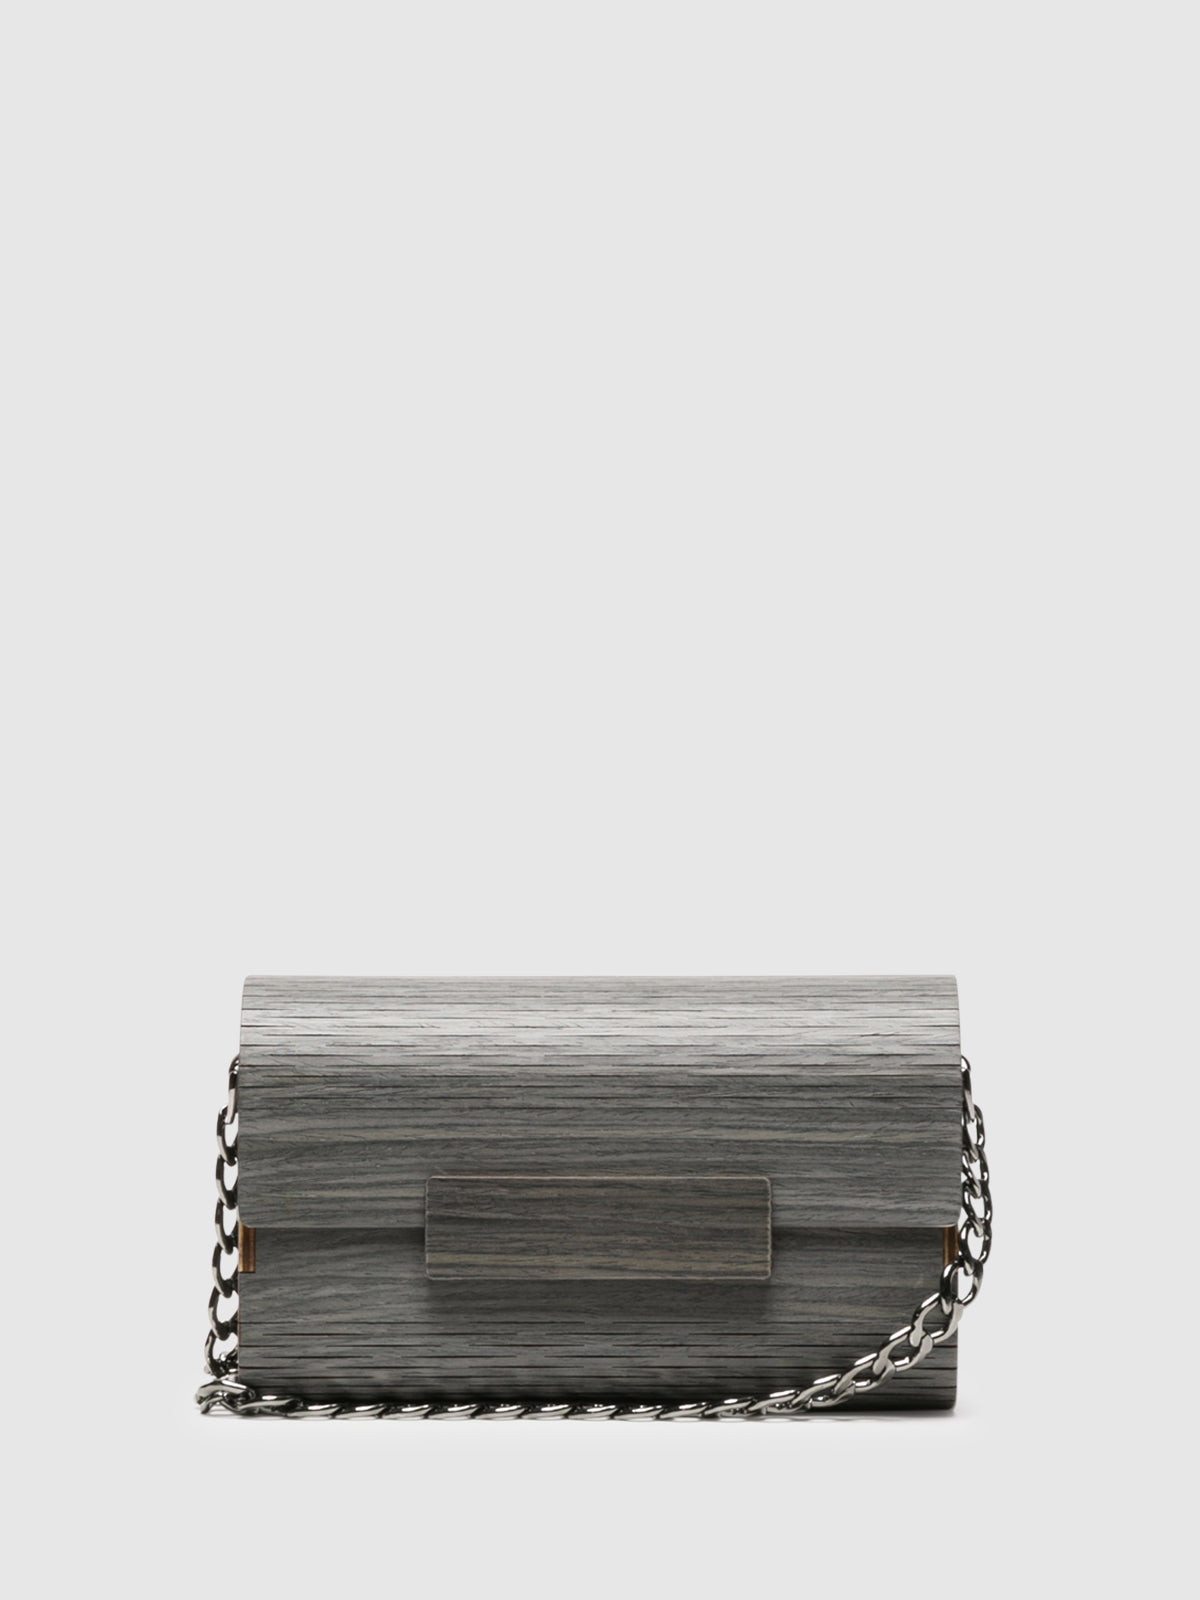 Marita Moreno Gray Clutch